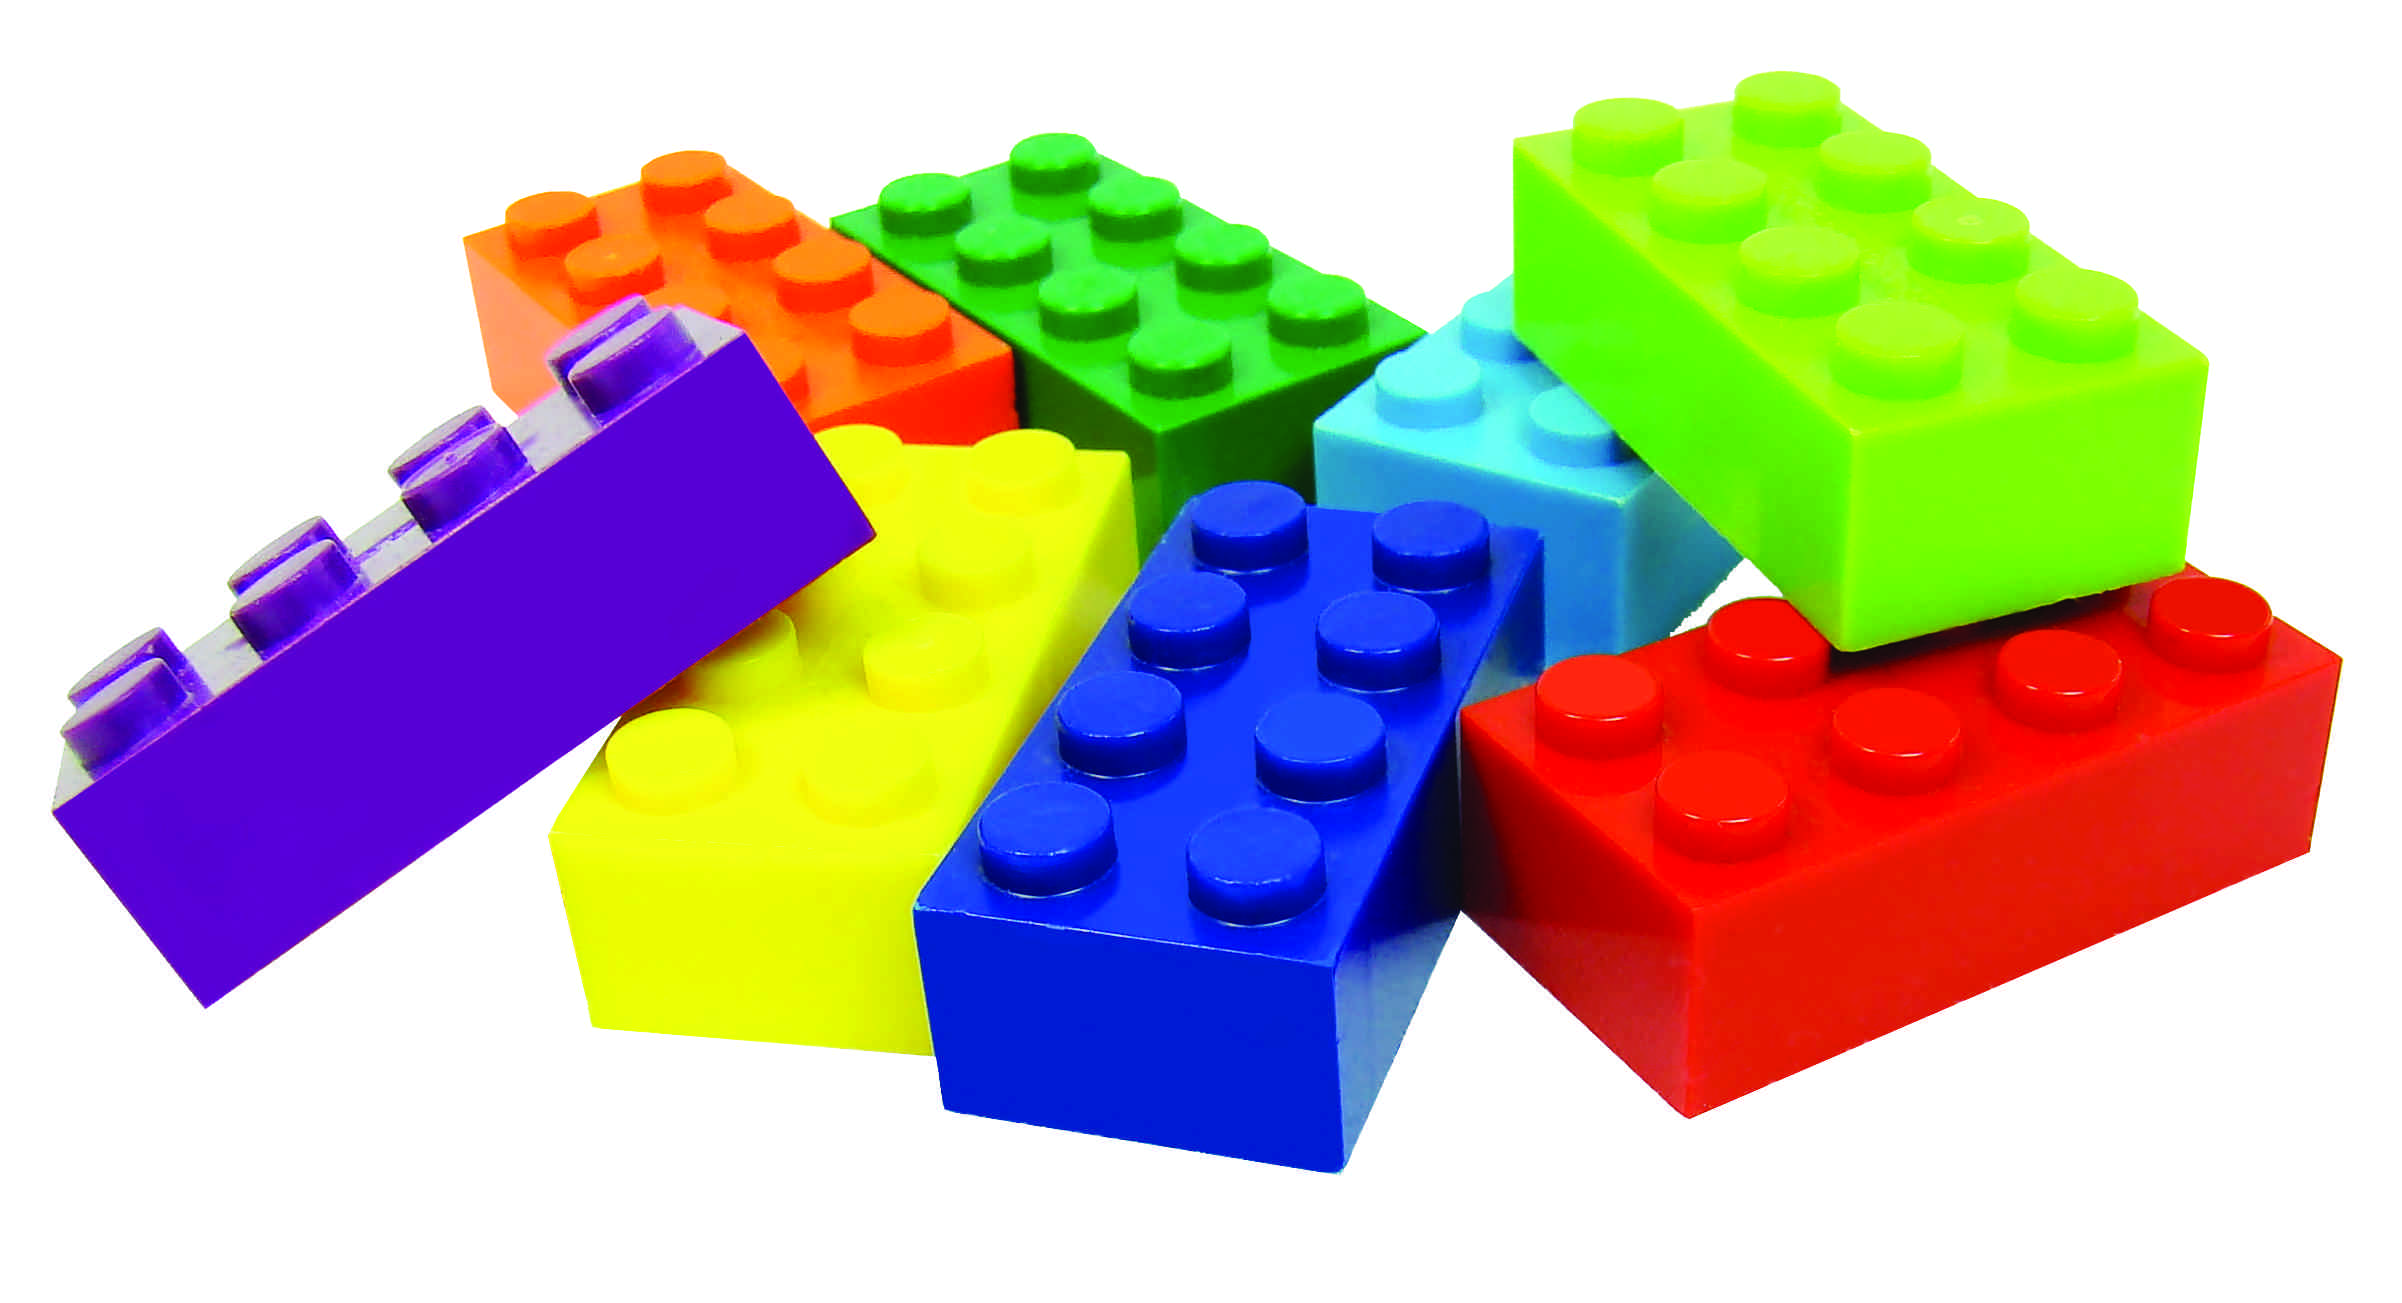 2402x1303 Lego Bricks Clipart Lego Bricks Clipart Lego Brick Summer2015